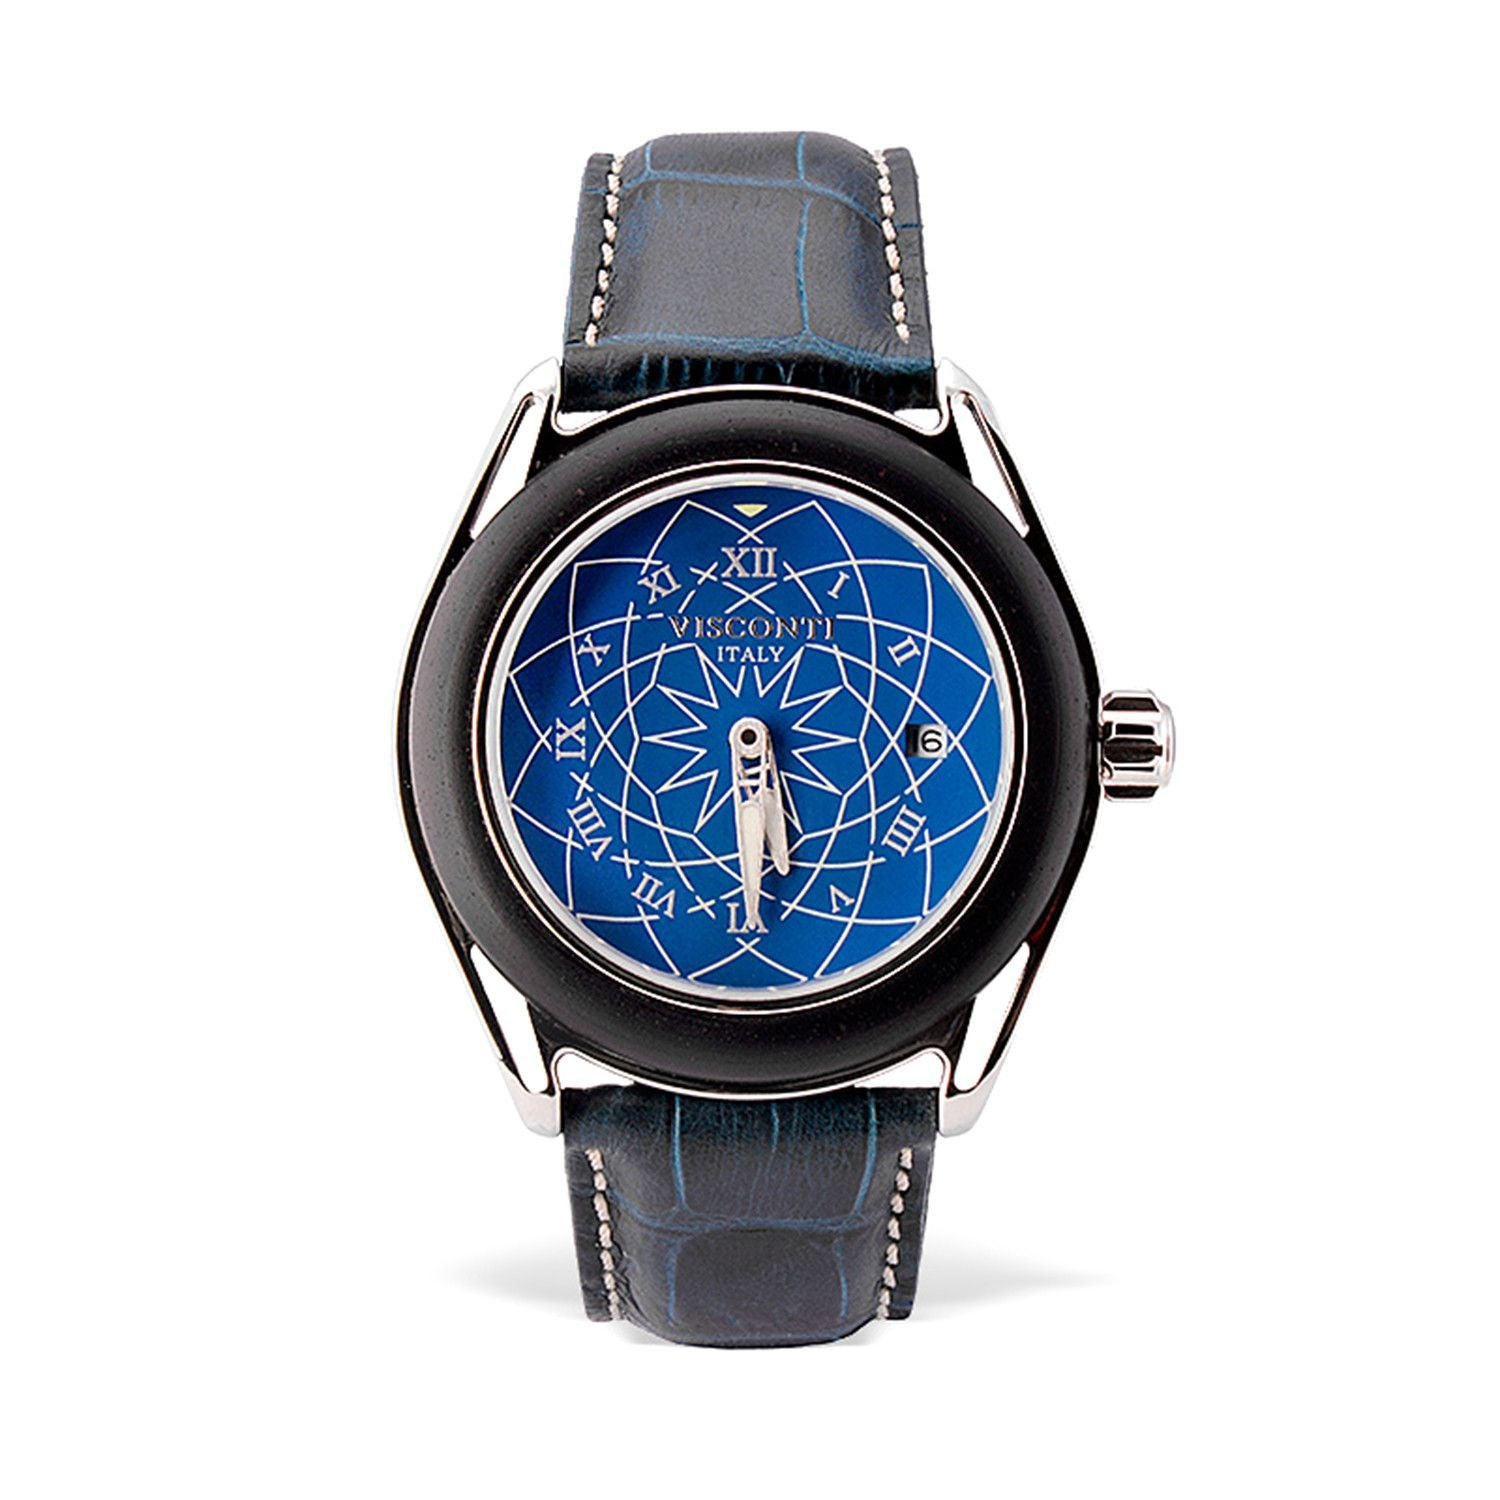 Visconti Lava Evolution Date Blue - Watches & Crystals